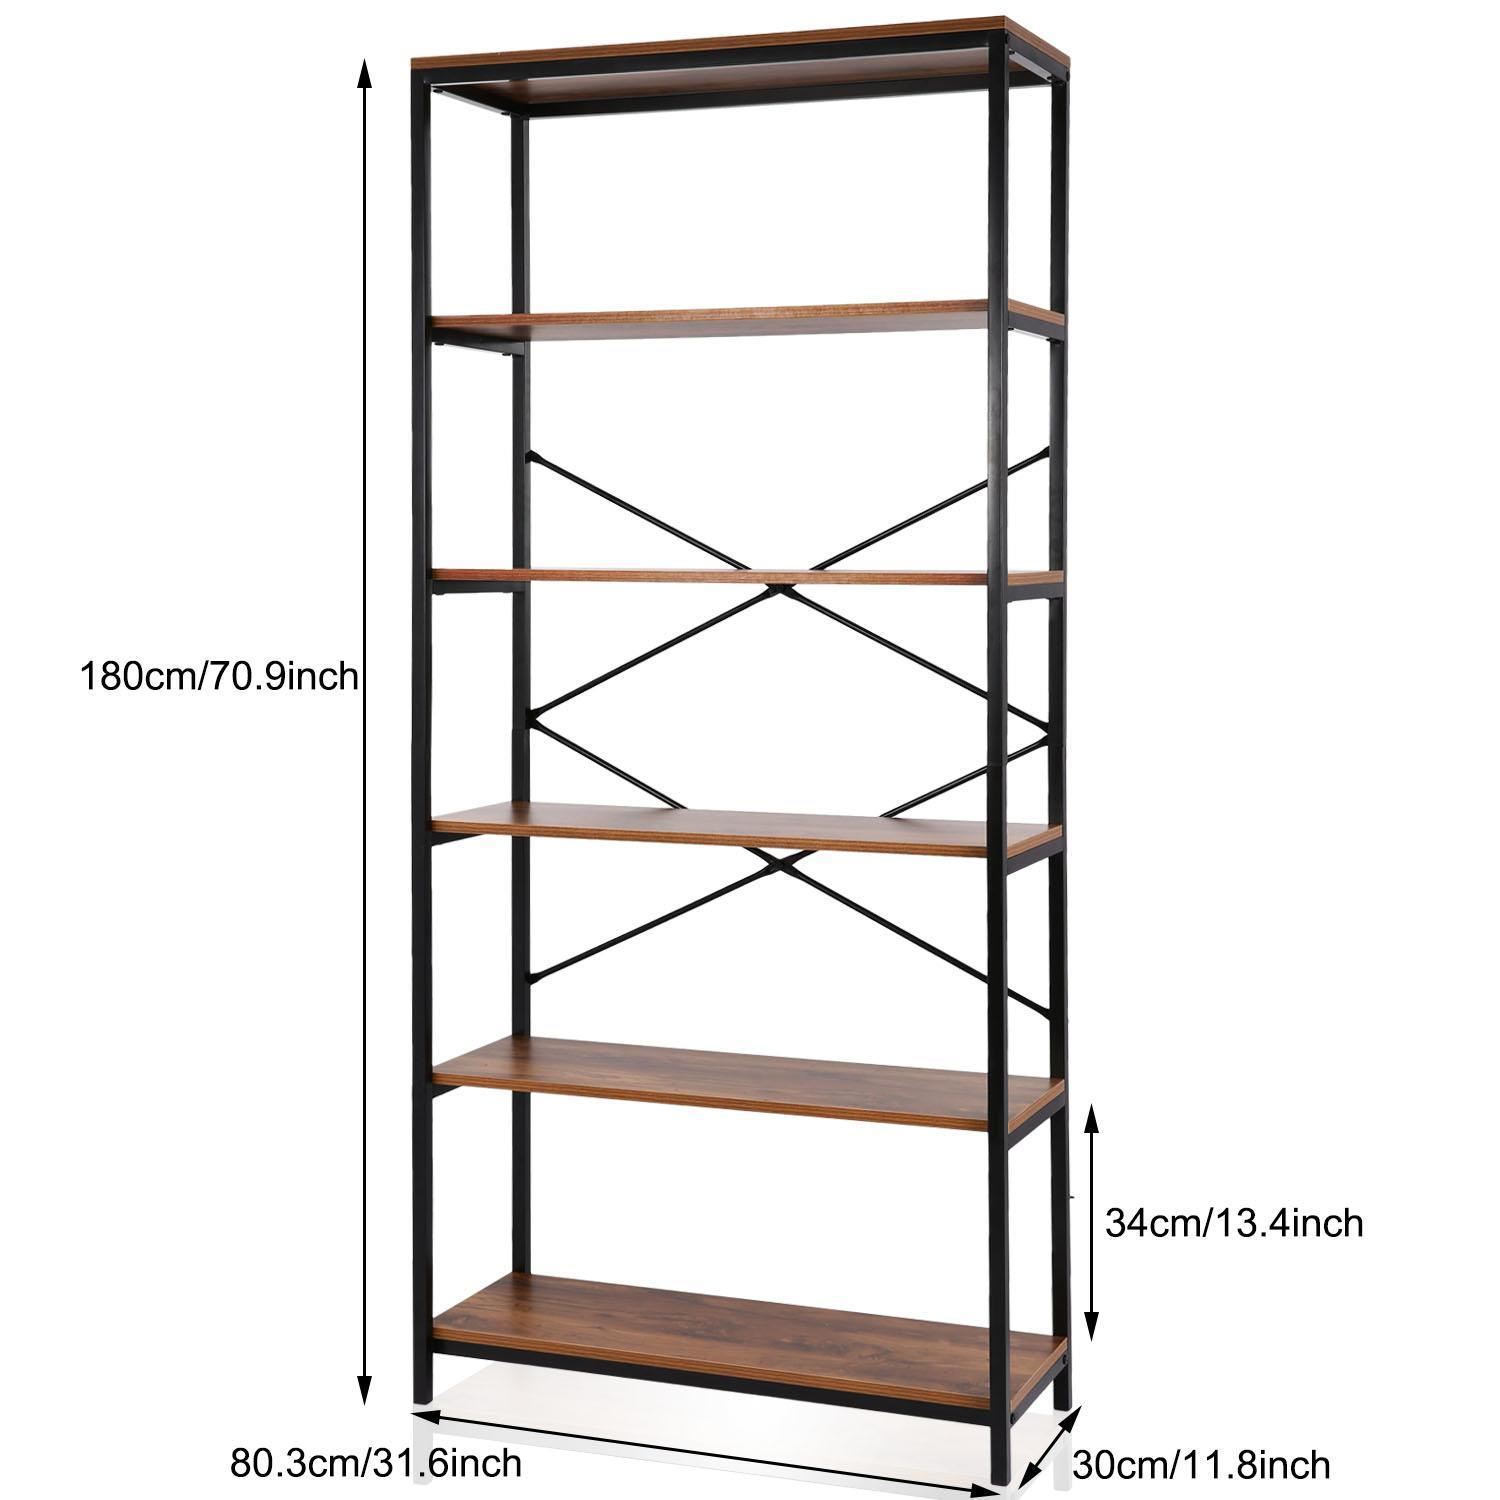 Special!5-tier Wooden Bookcase Storage Shelves Organizer, Retro Bookshelf Plant Display Shelf, Wood and Steel Frame Open Wide for Balcony/Study Room/Living room